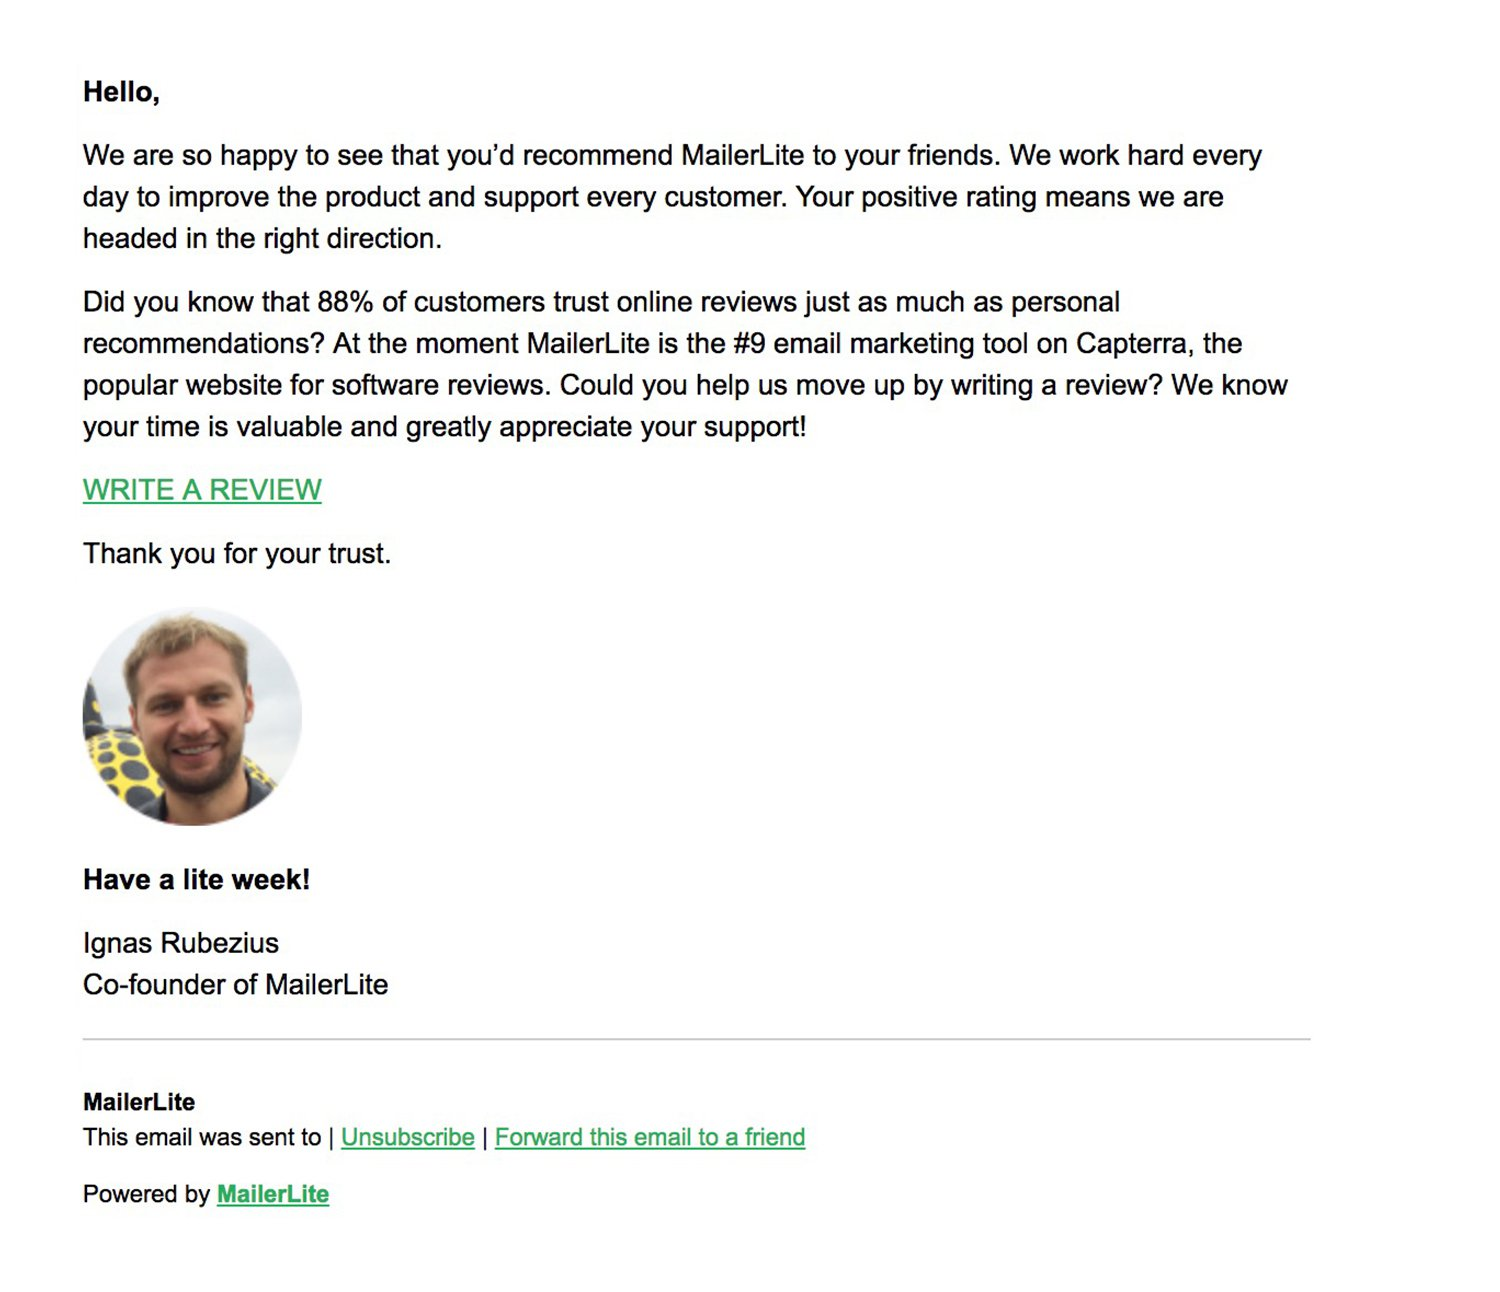 8e0c181a6ceb Using email to personalize NPS customer feedback - MailerLite